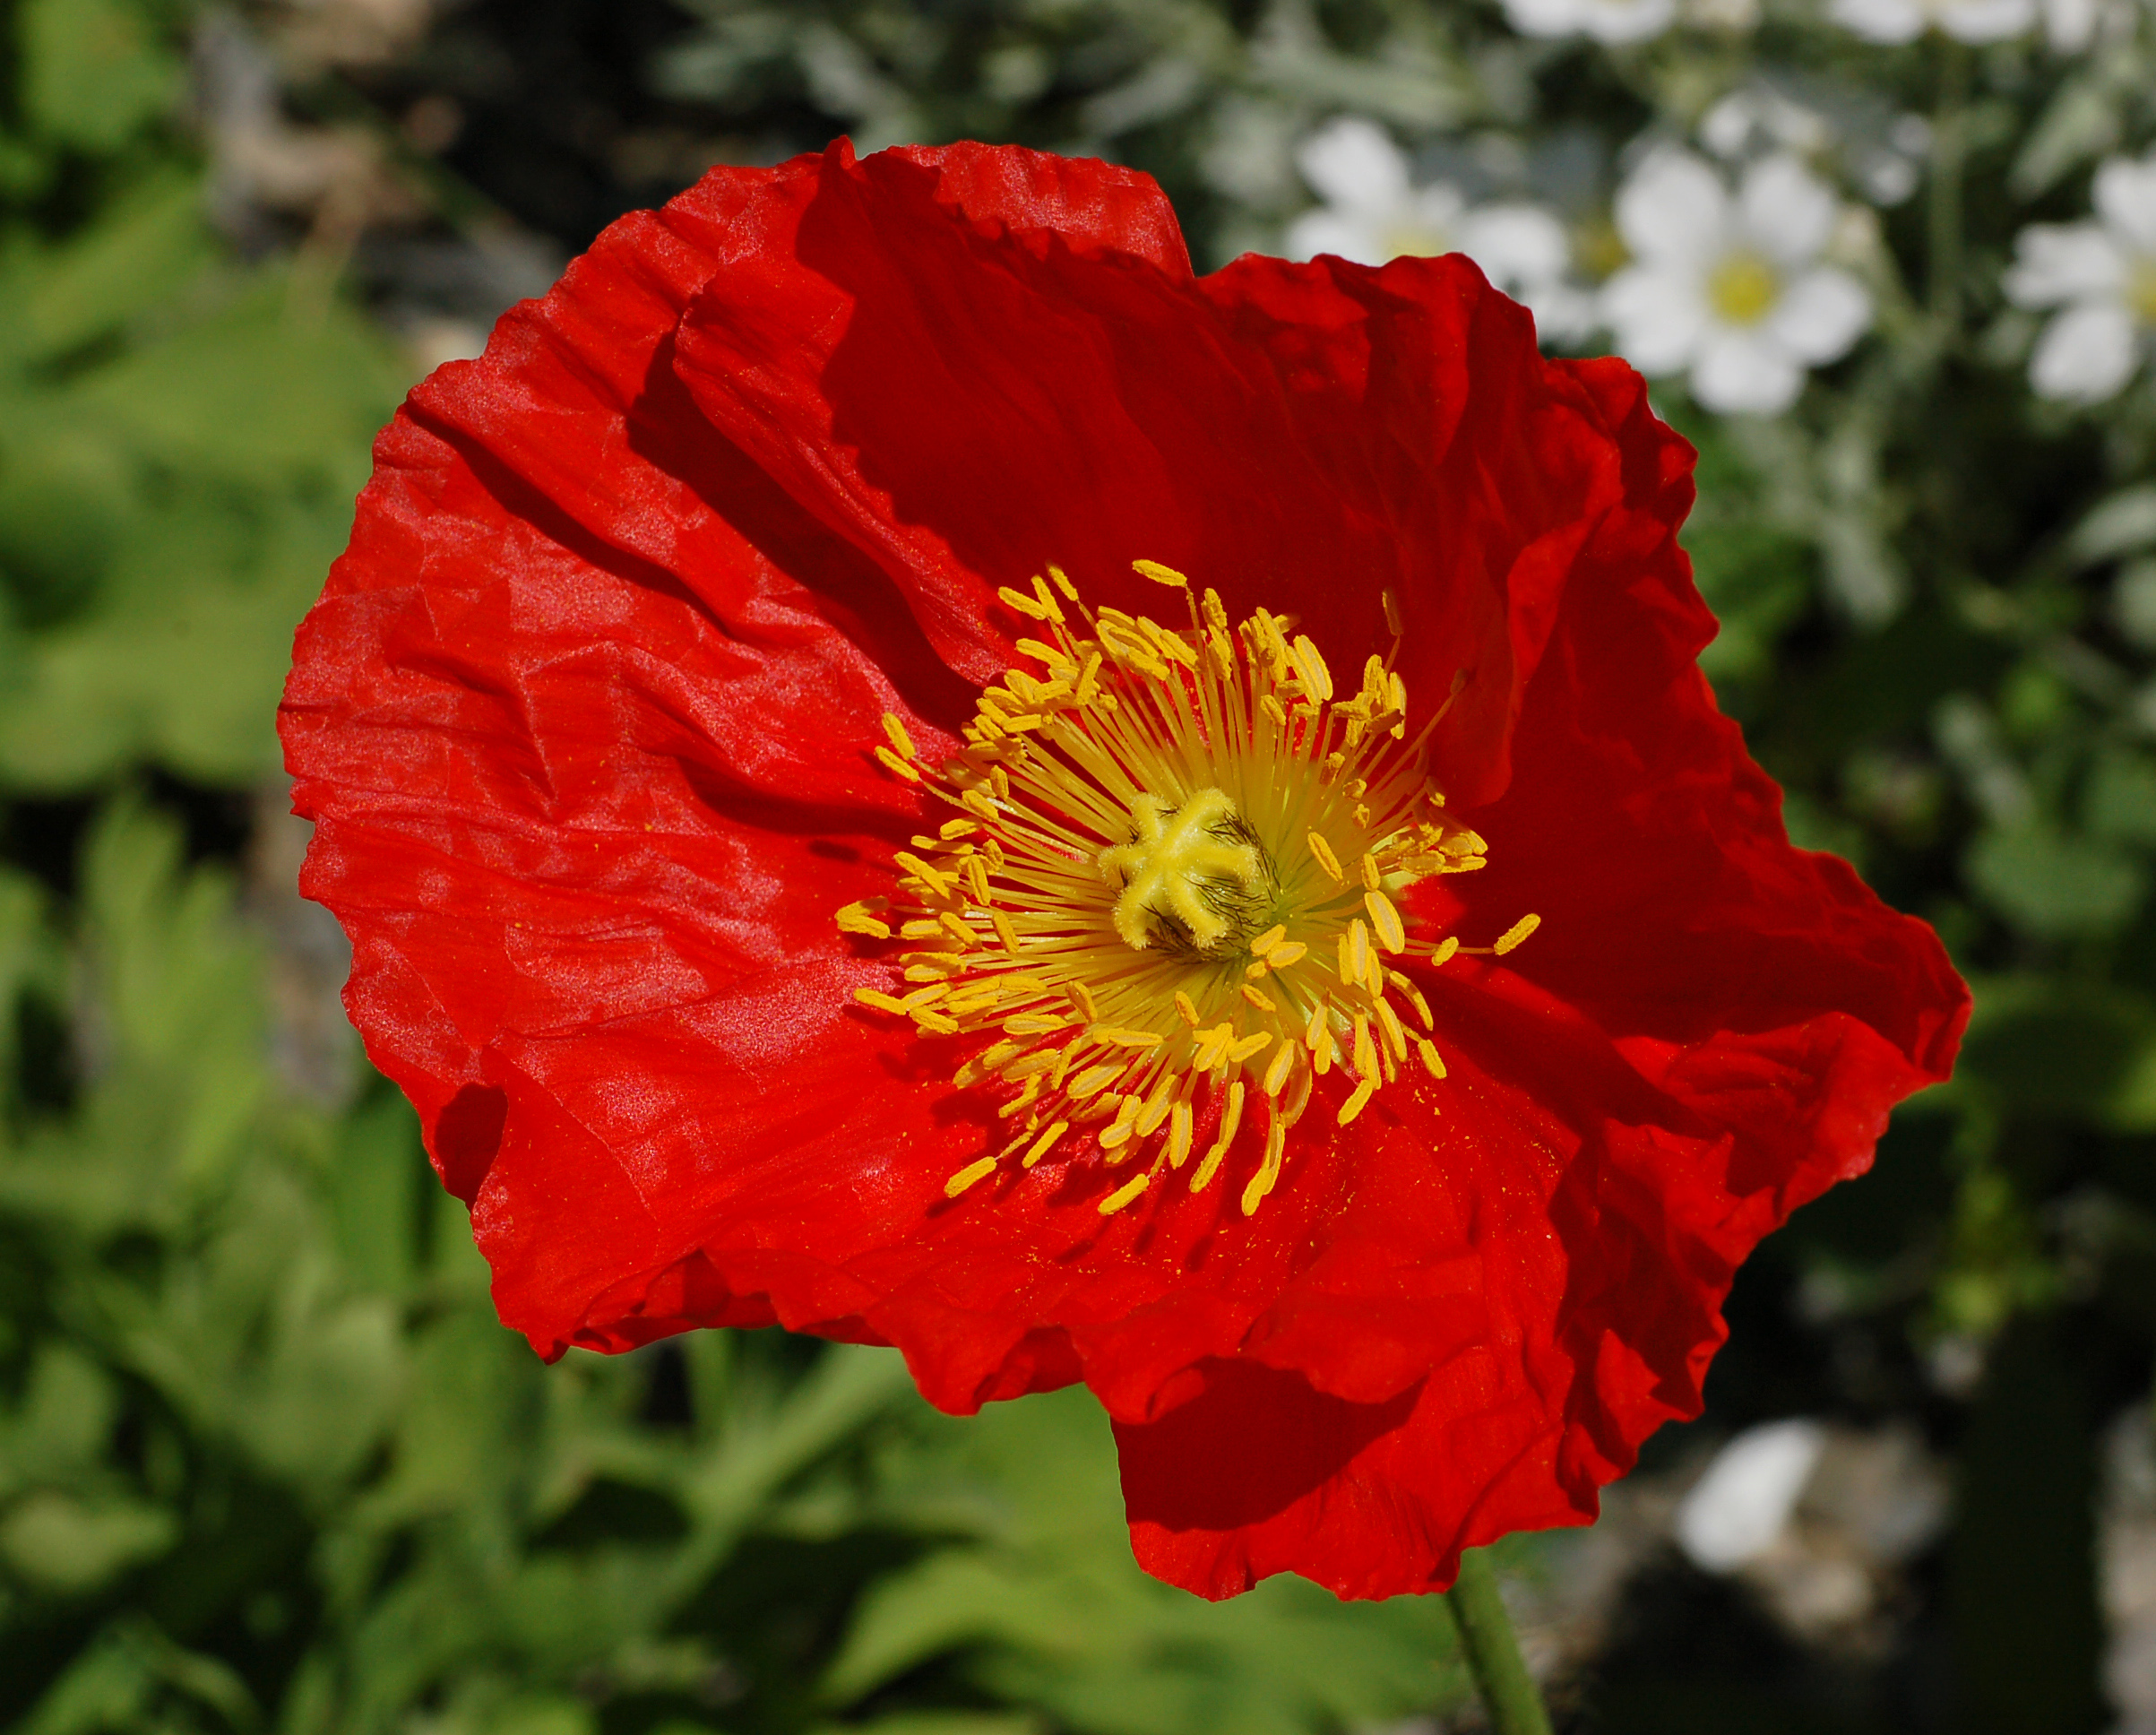 Fileiceland poppy papaver nudicaule champagne bubbles red flower fileiceland poppy papaver nudicaule champagne bubbles red flowerg mightylinksfo